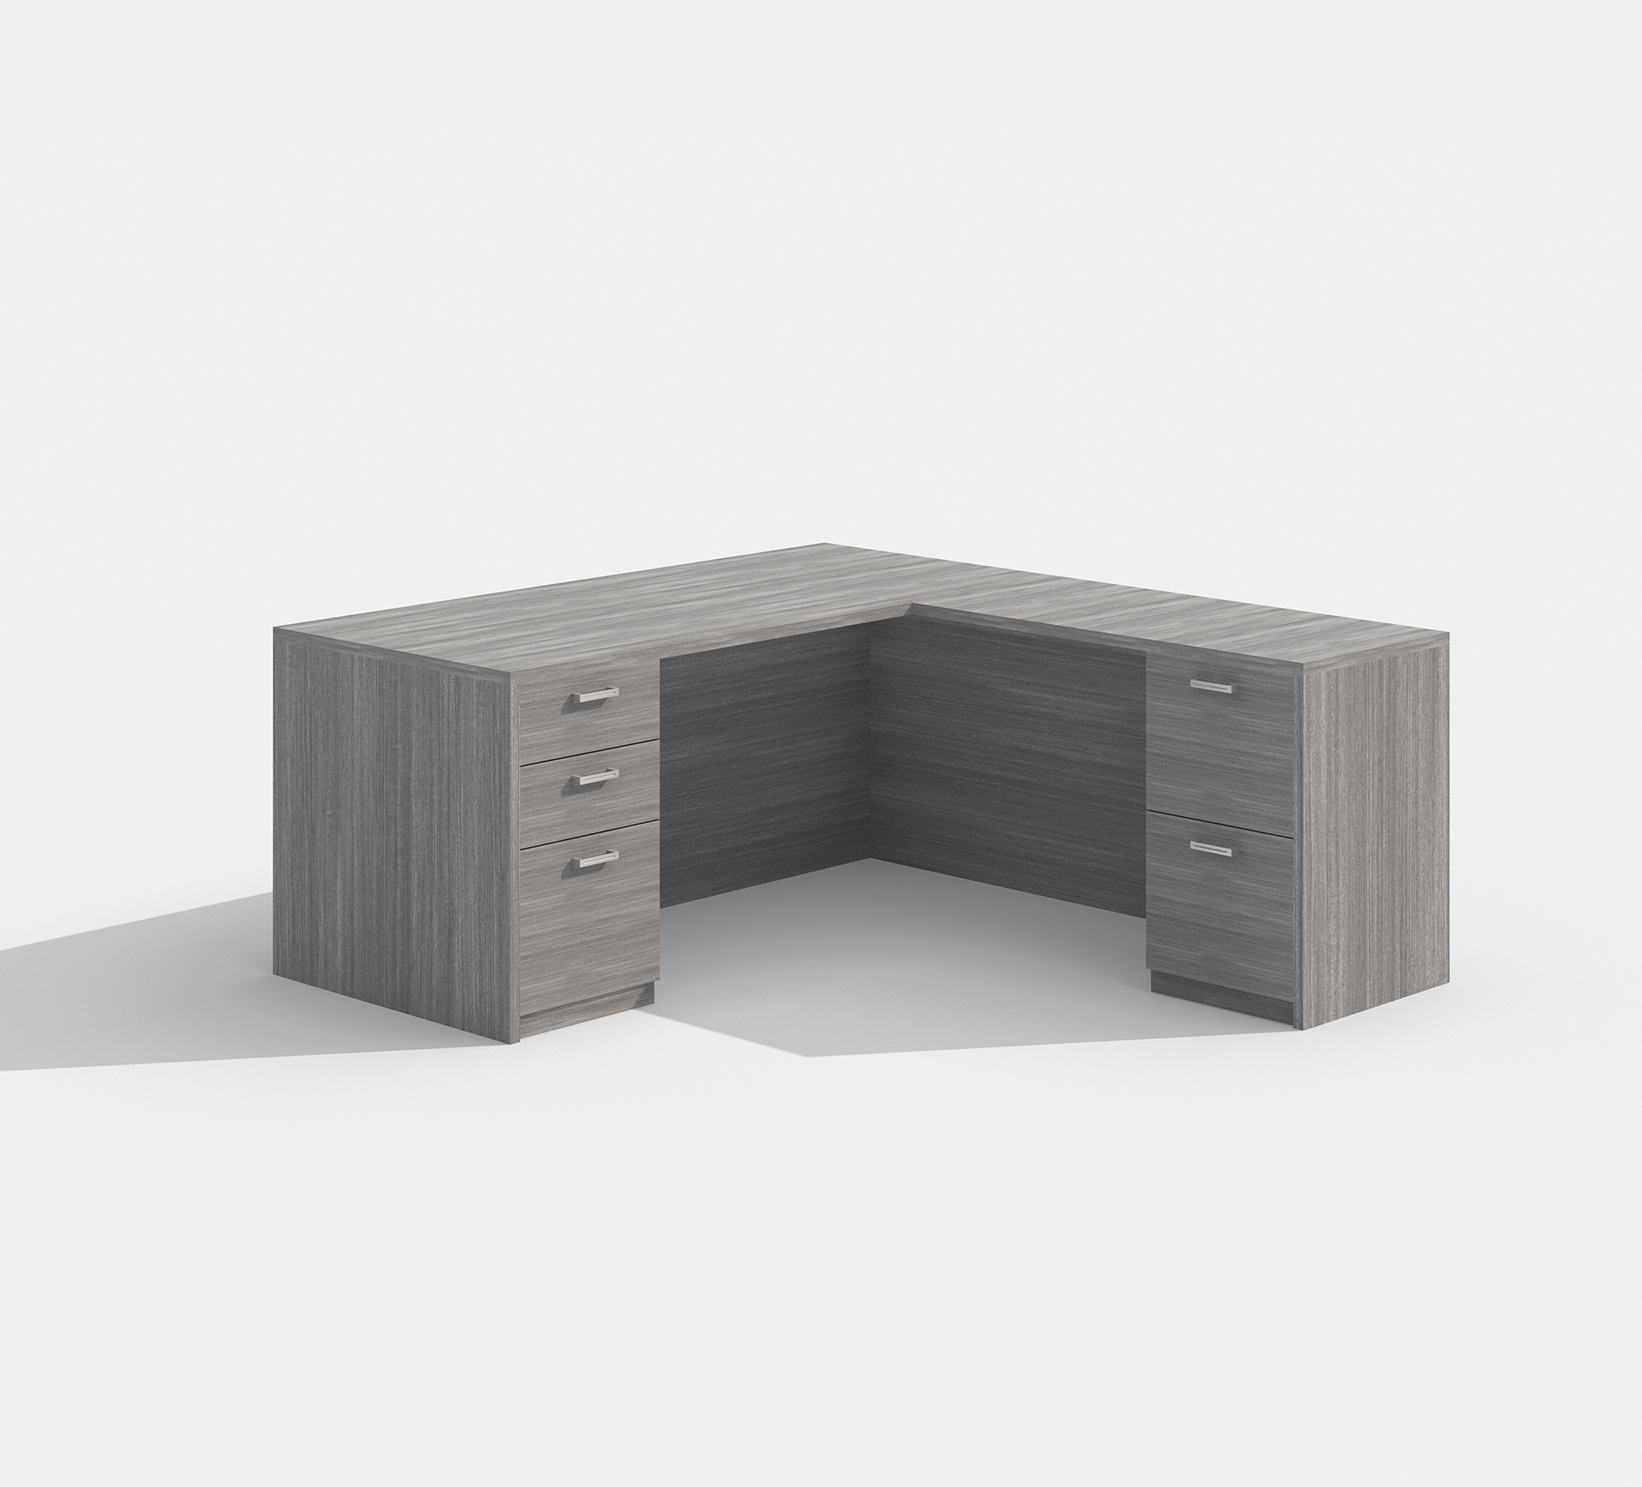 cherryman amber l-desk am-312n in valley gray